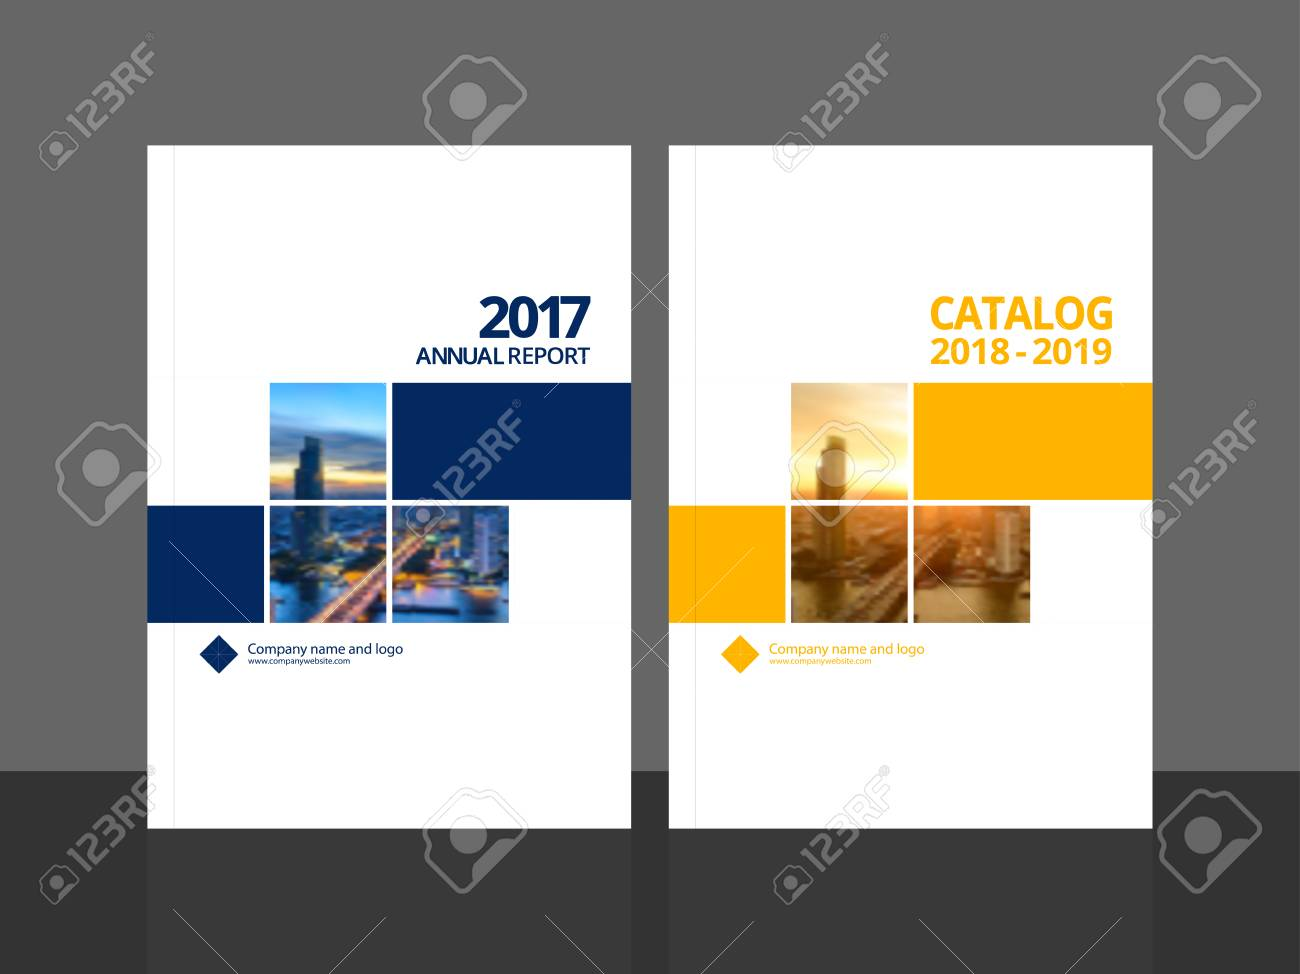 Cover design for annual report and business catalog magazine cover design for annual report and business catalog magazine flyer or booklet brochure accmission Gallery